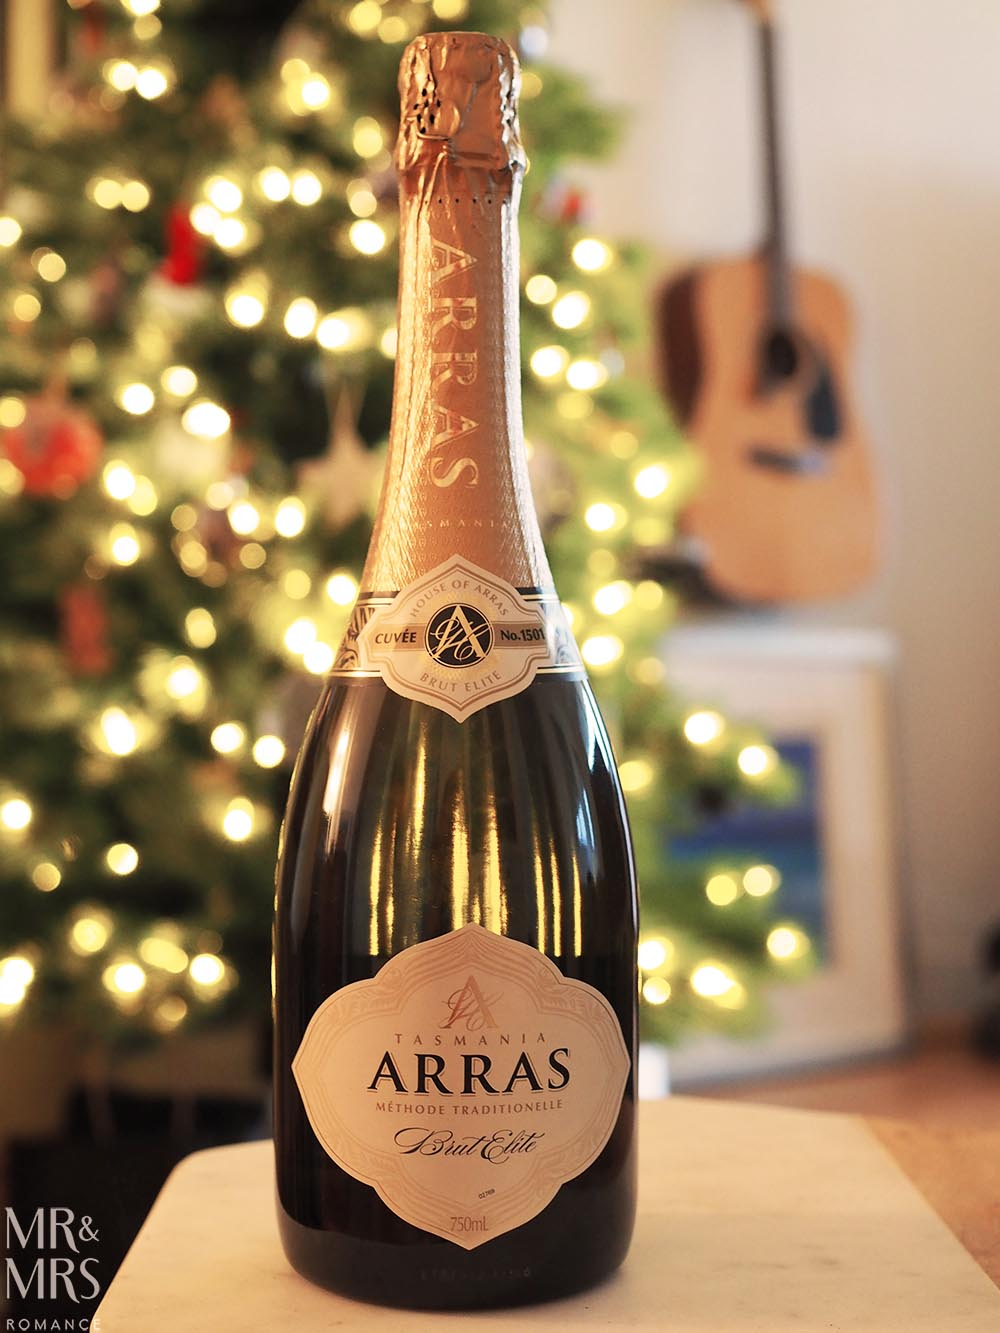 Australian sparkling for Christmas - Arras Brut Elite Cuvée 1501